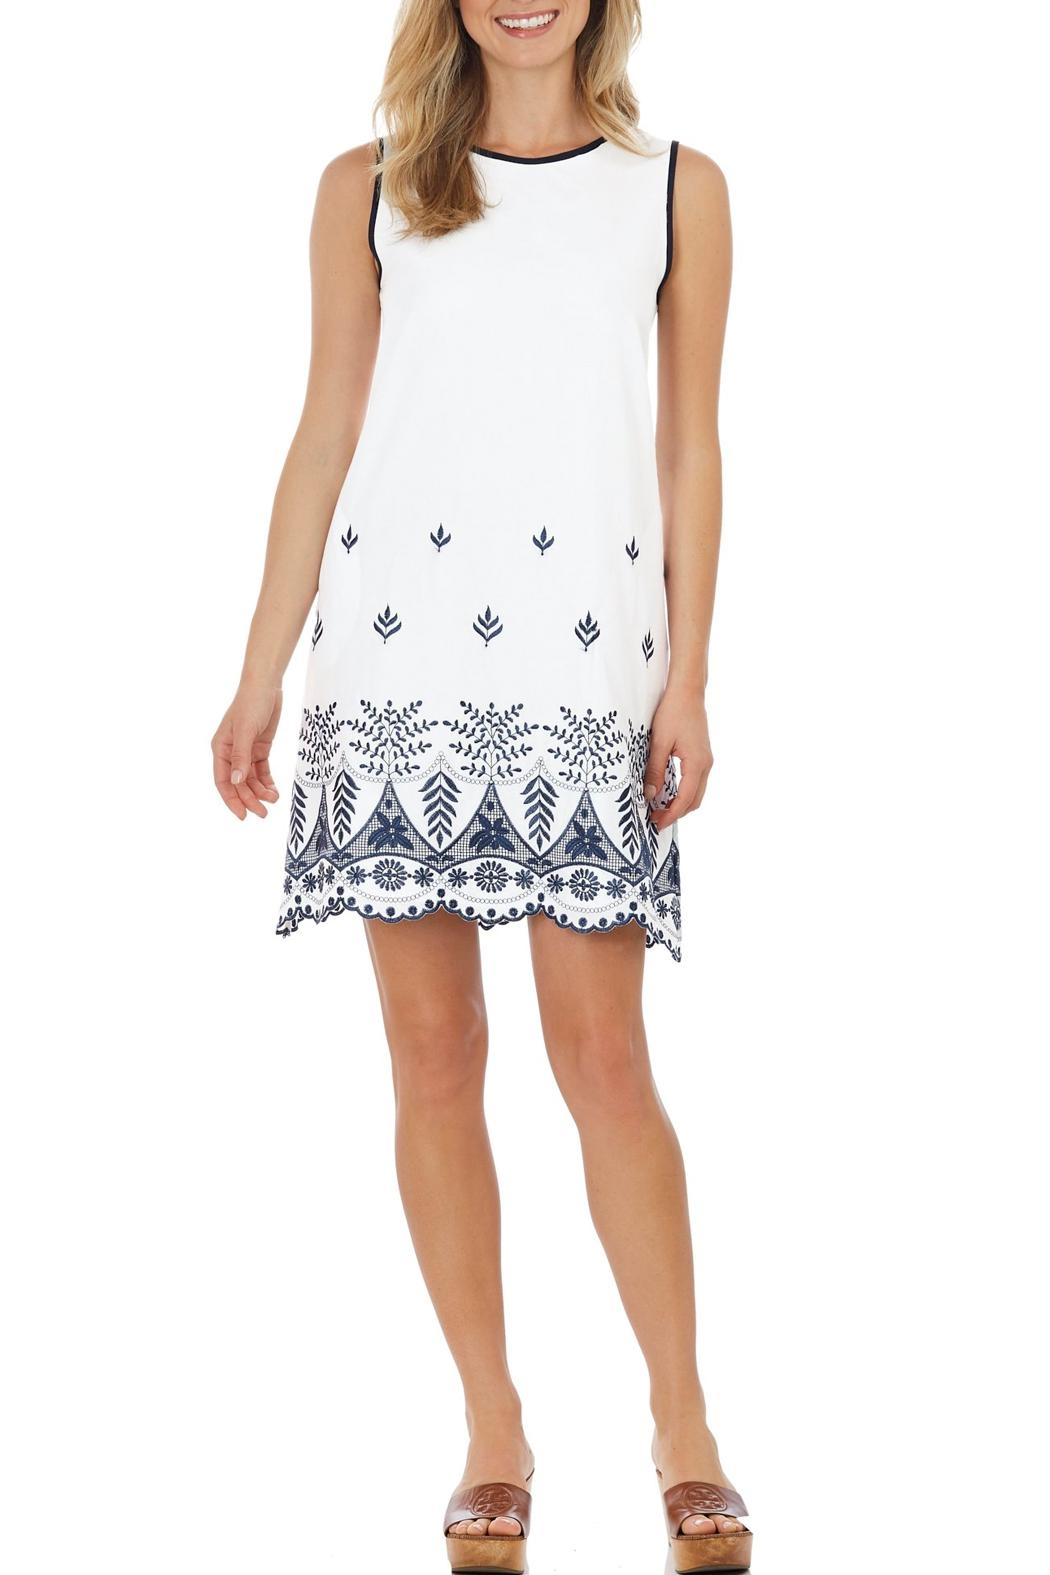 Jude Connally Melody Embroidered Dress - Main Image